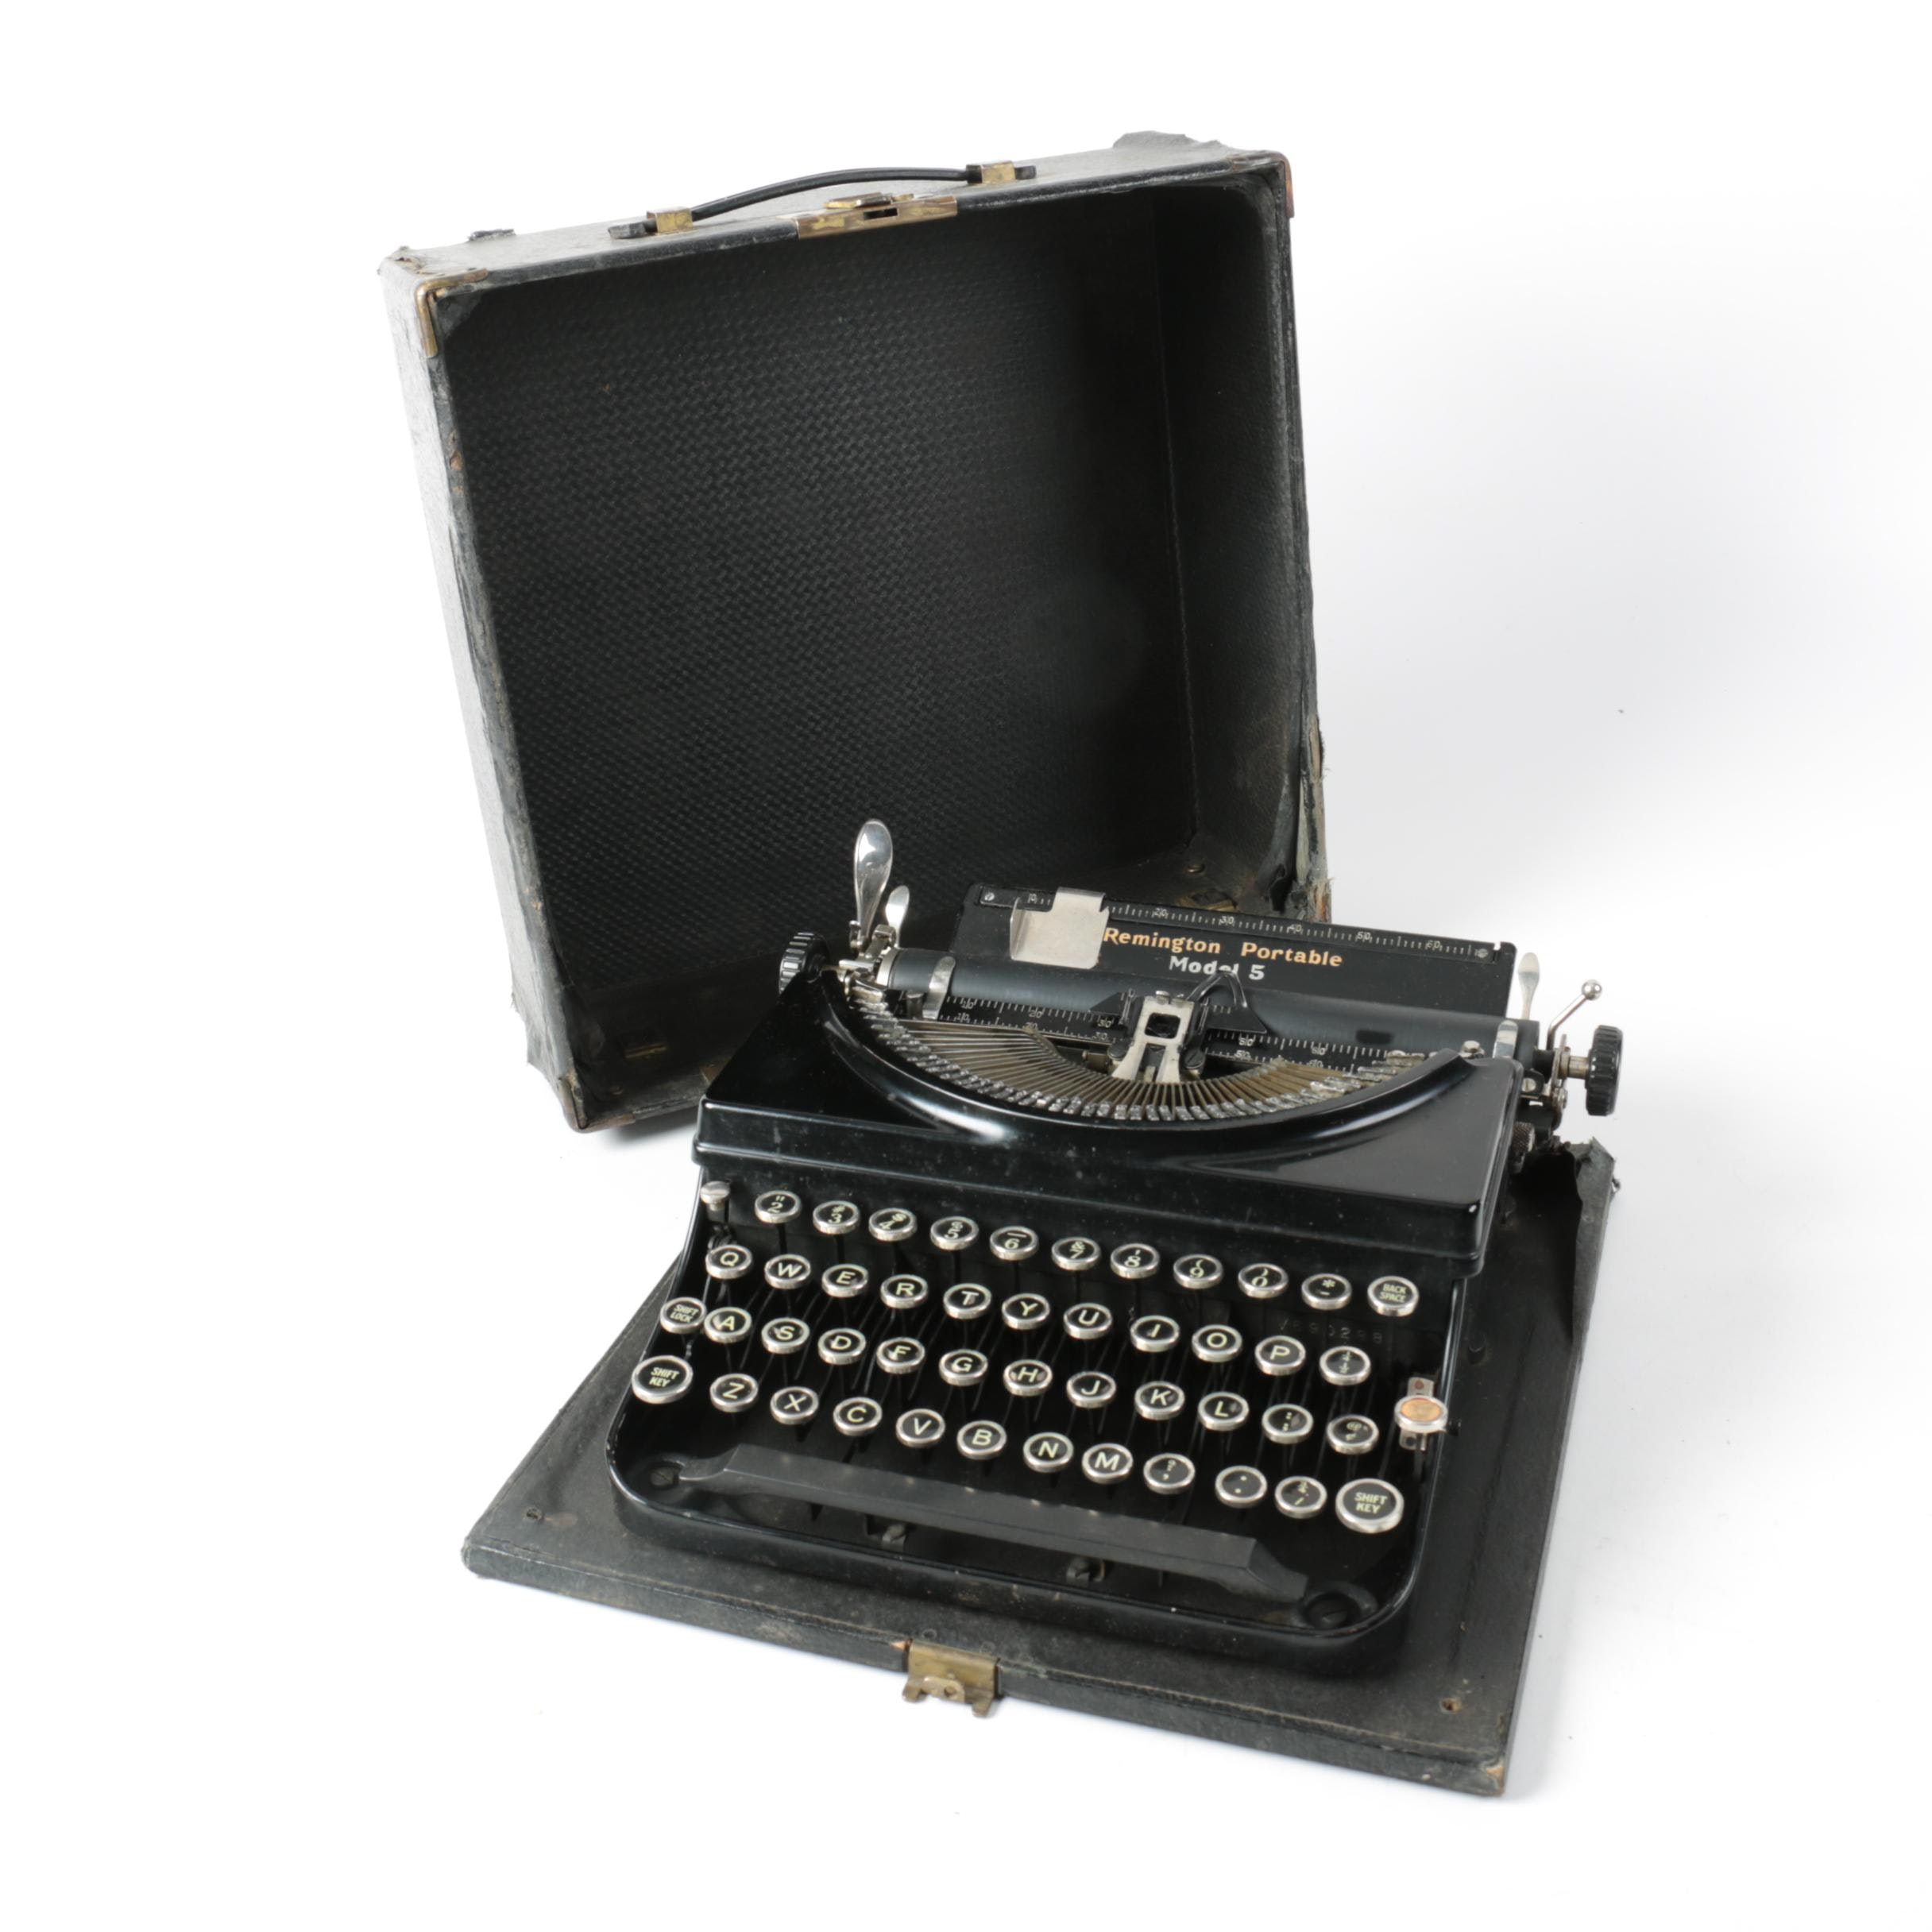 1930s Remington Portable Model 5 Typewriter